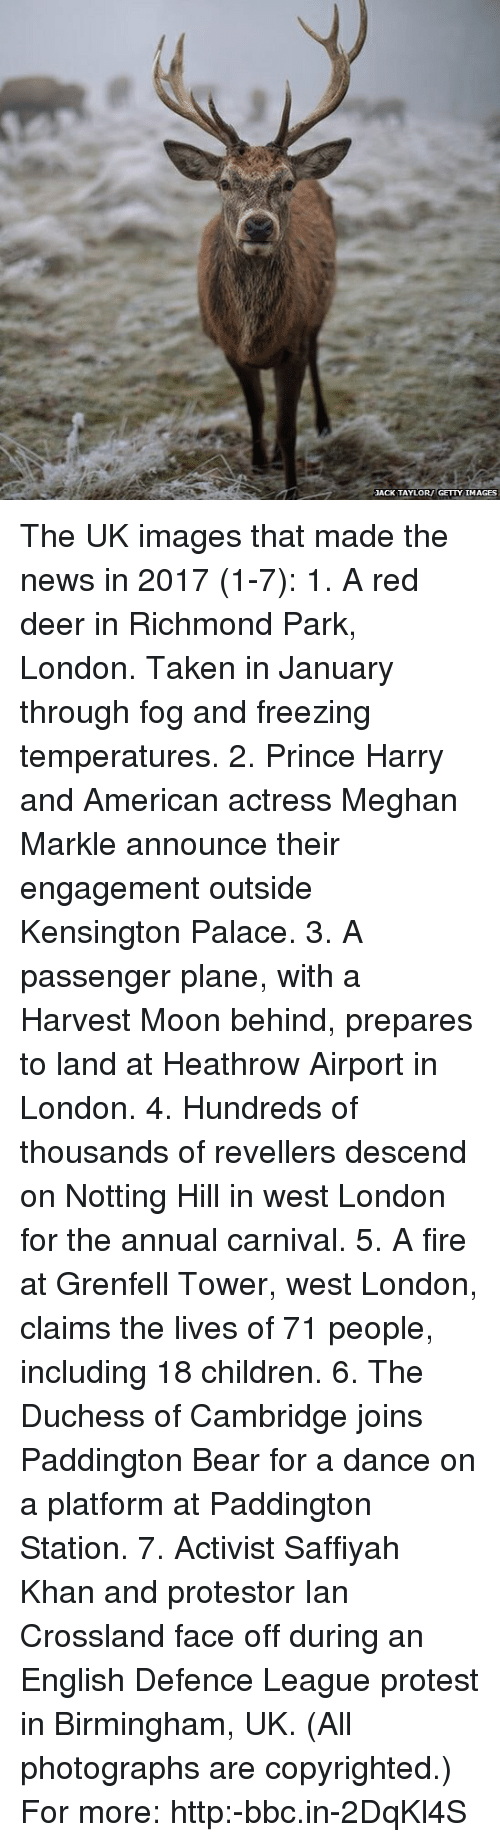 Children, Deer, and Fire: ACK TAYLOR GETTYIMAGES The UK images that made the news in 2017 (1-7): 1. A red deer in Richmond Park, London. Taken in January through fog and freezing temperatures. 2. Prince Harry and American actress Meghan Markle announce their engagement outside Kensington Palace. 3. A passenger plane, with a Harvest Moon behind, prepares to land at Heathrow Airport in London. 4. Hundreds of thousands of revellers descend on Notting Hill in west London for the annual carnival. 5. A fire at Grenfell Tower, west London, claims the lives of 71 people, including 18 children. 6. The Duchess of Cambridge joins Paddington Bear for a dance on a platform at Paddington Station. 7. Activist Saffiyah Khan and protestor Ian Crossland face off during an English Defence League protest in Birmingham, UK. (All photographs are copyrighted.) For more: http:-bbc.in-2DqKl4S